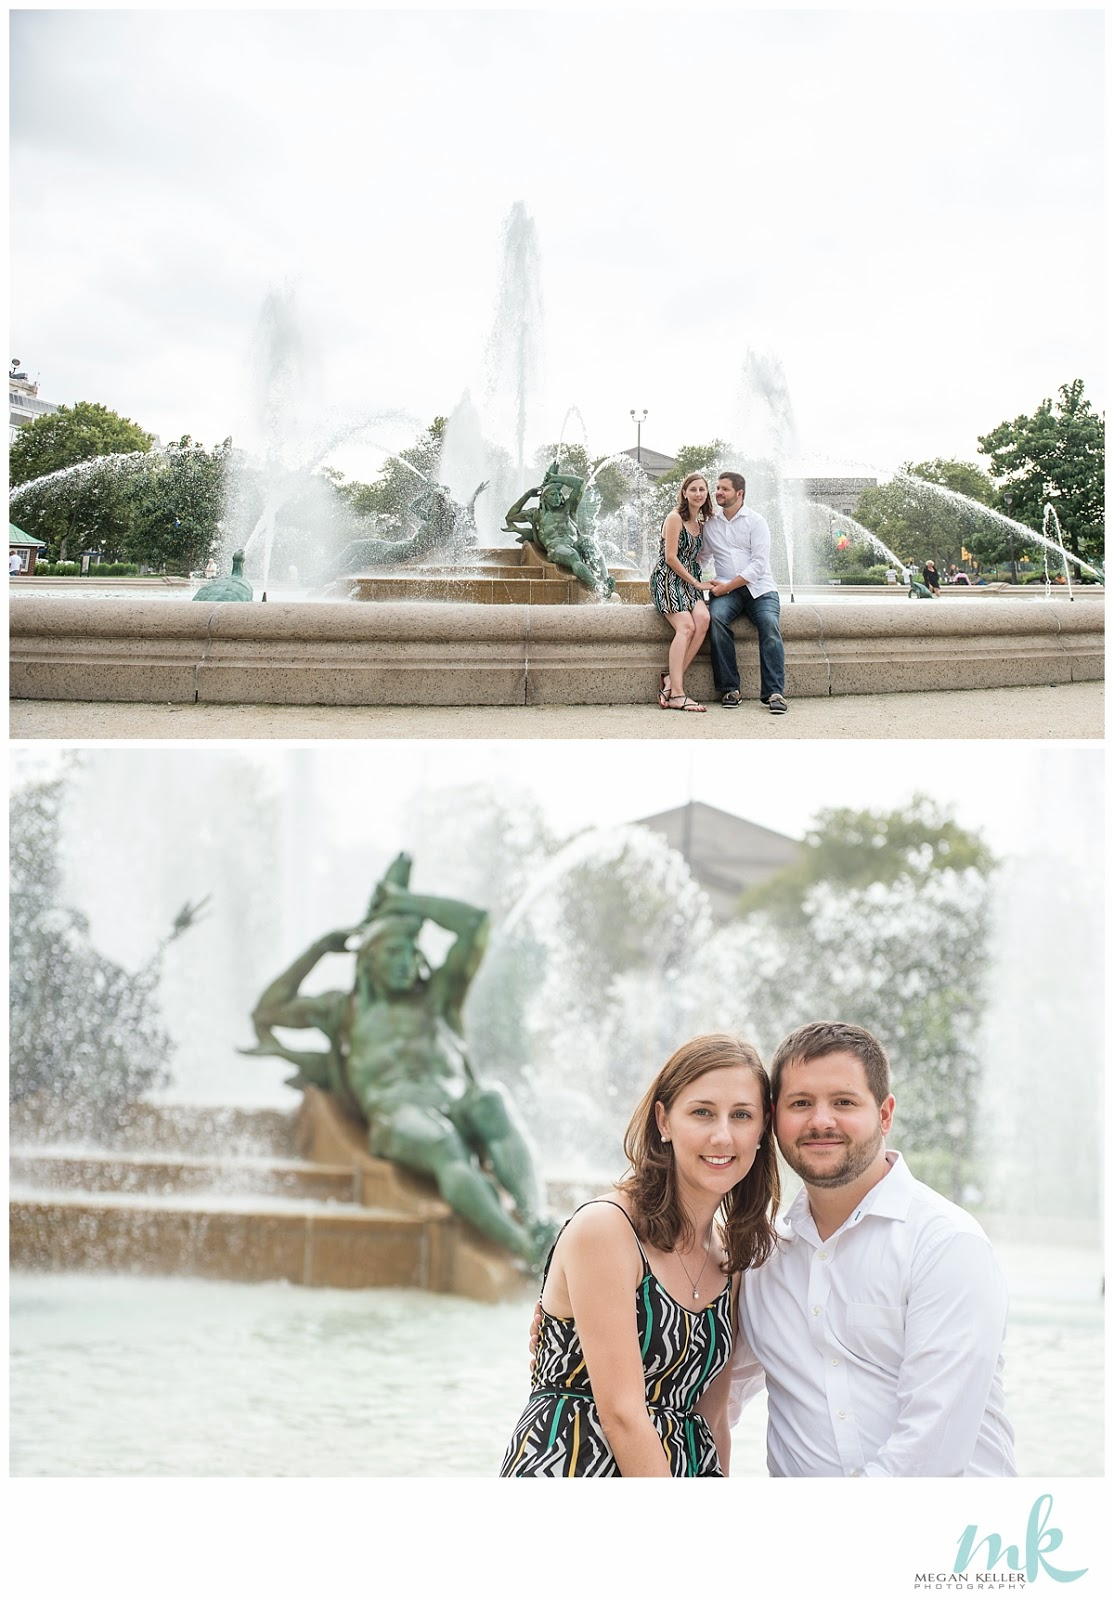 Kelly and Frank Engagement Session Kelly and Frank Engagement Session 2014 08 04 0004